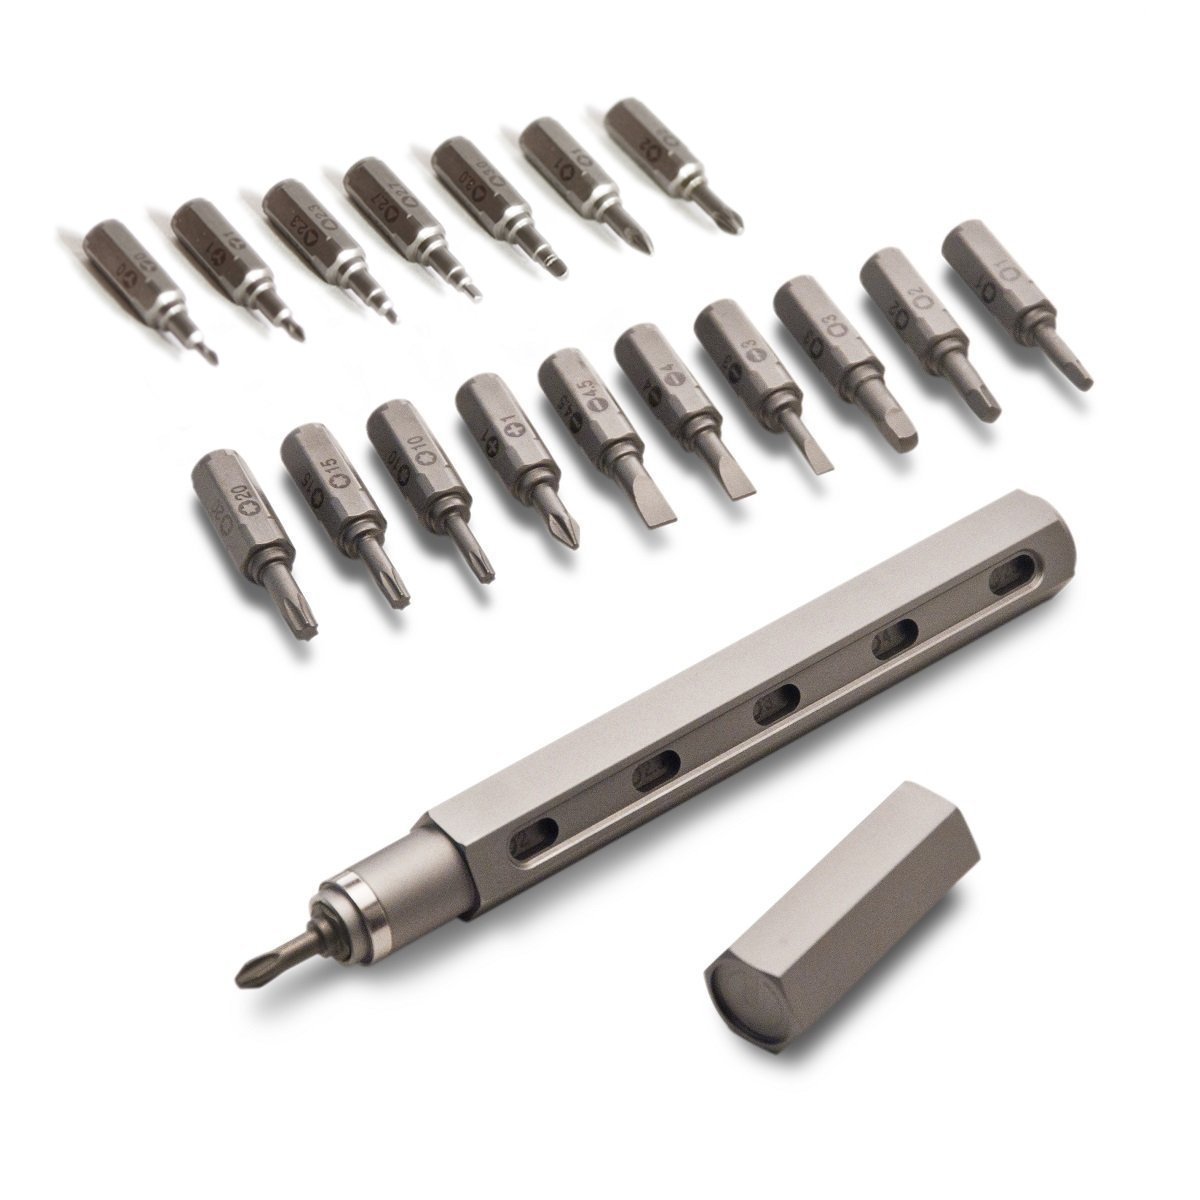 Premium Tool Pen by Mininch | EDC Multi-Tool Screwdriver | Interchangeable Phillips, Flathead, Hex, and Star Bolt Heads | Imperial and Metric Sizes (Deluxe Tool Pen, Gunmetal) by Mininch (Image #1)